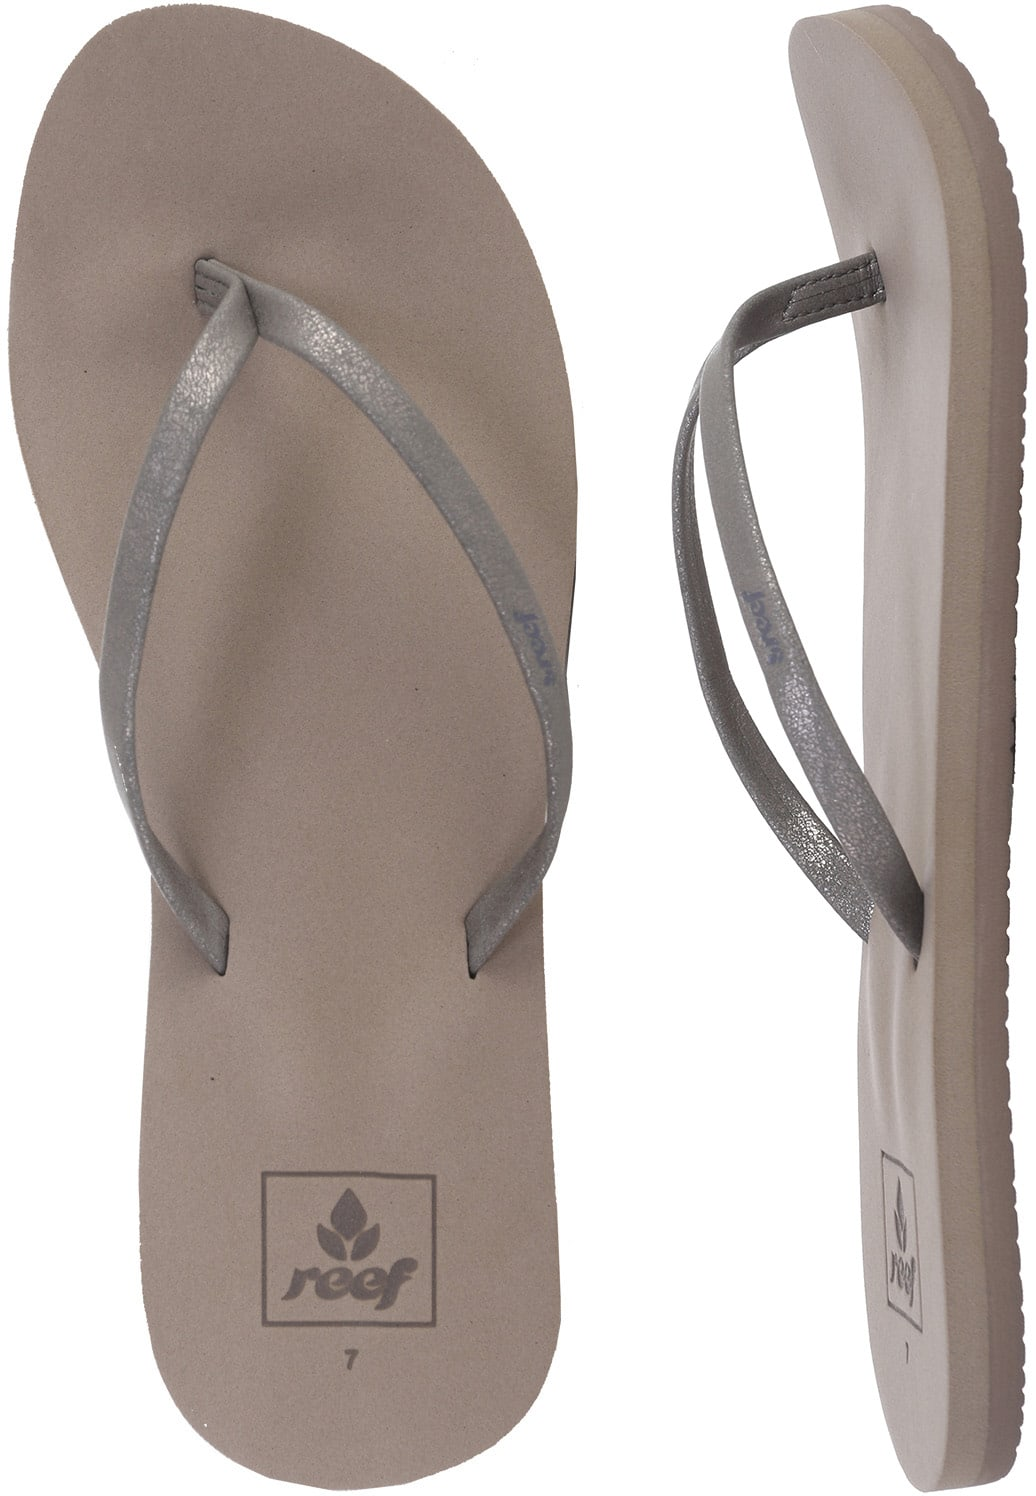 Womens sandals reviews - Rollover To Change Click To Enlarge